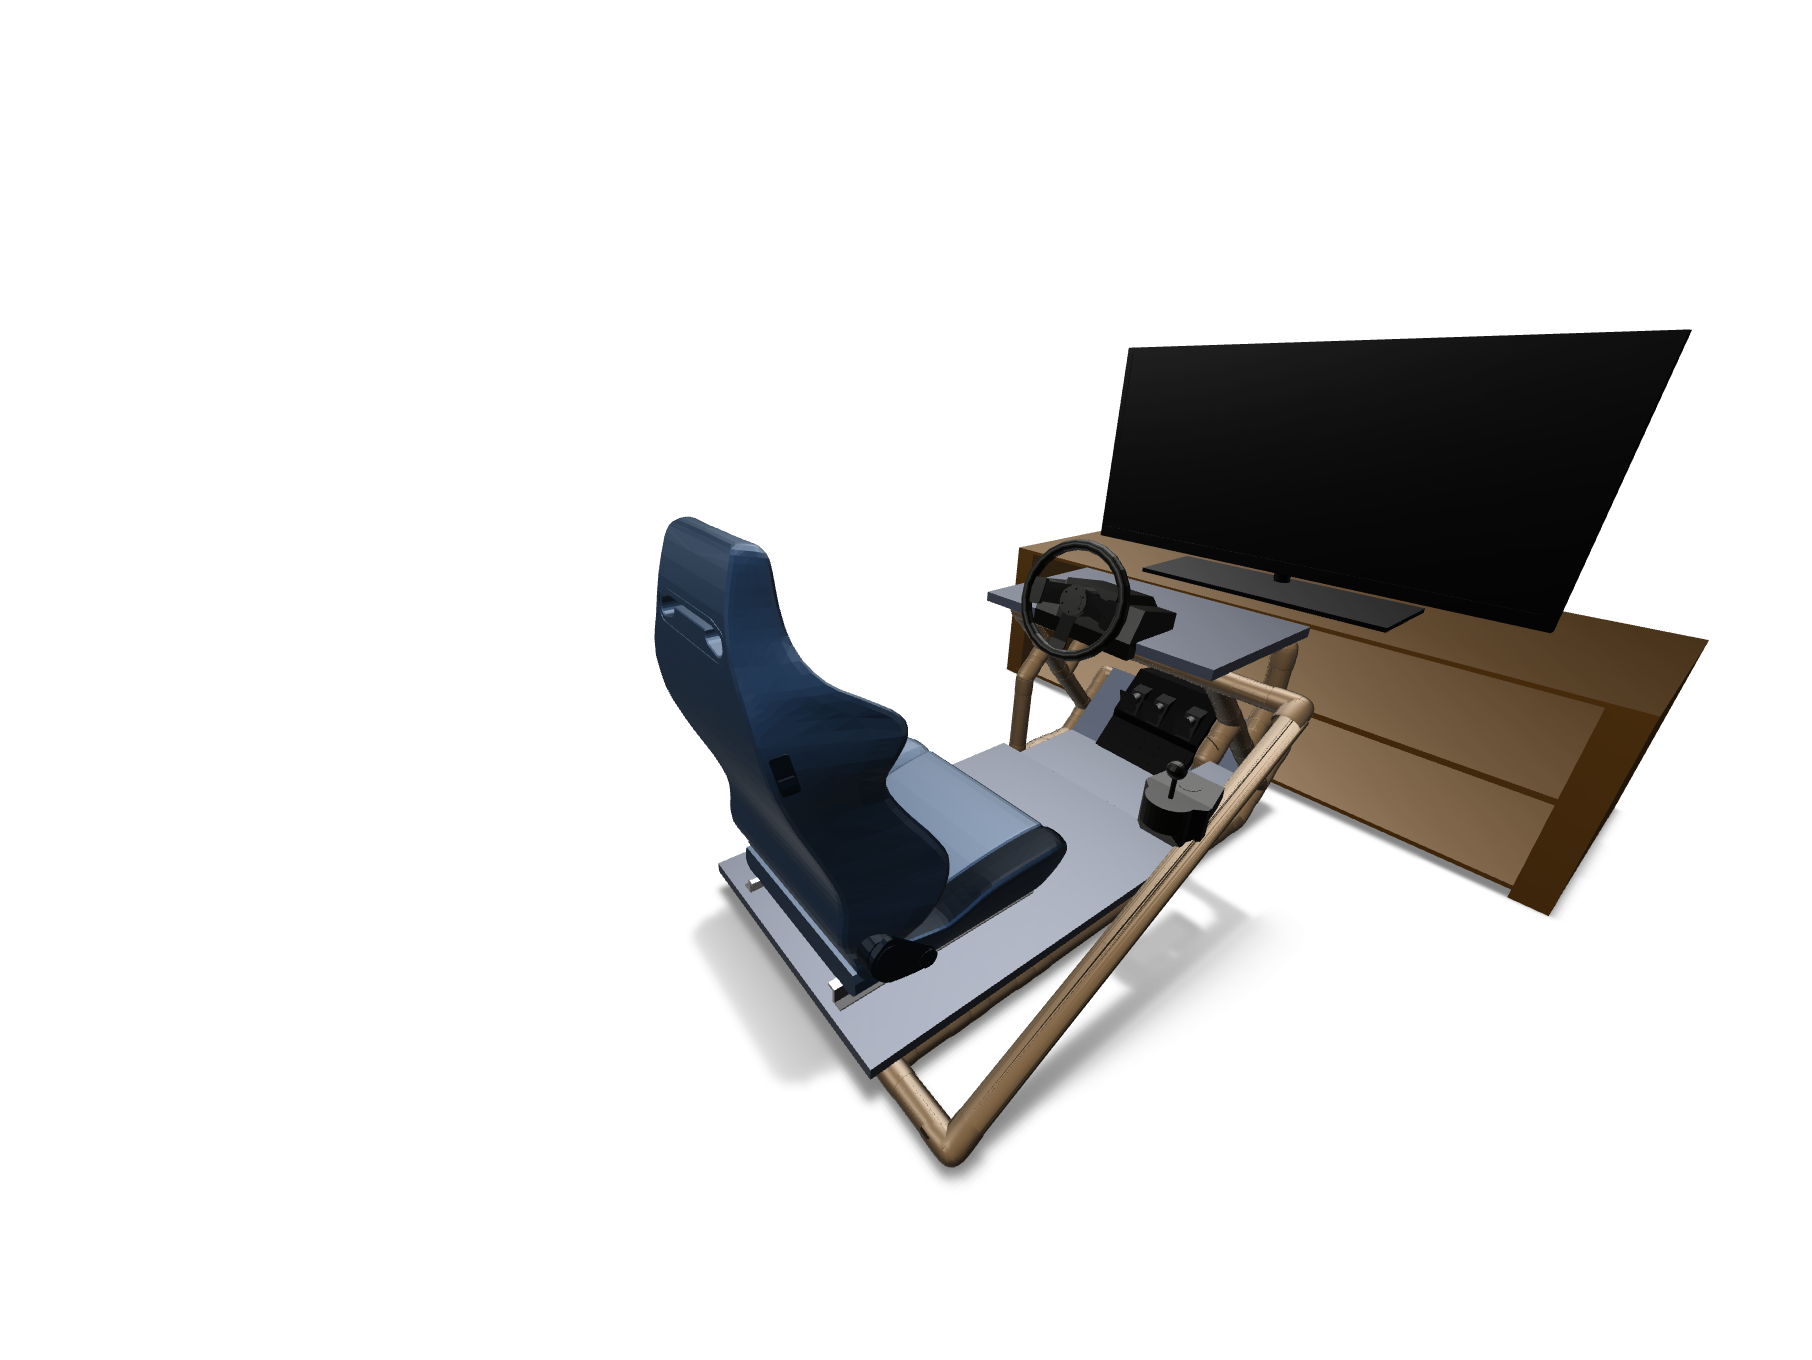 SimCockpit - 3D design by DrewD Apr 3, 2018